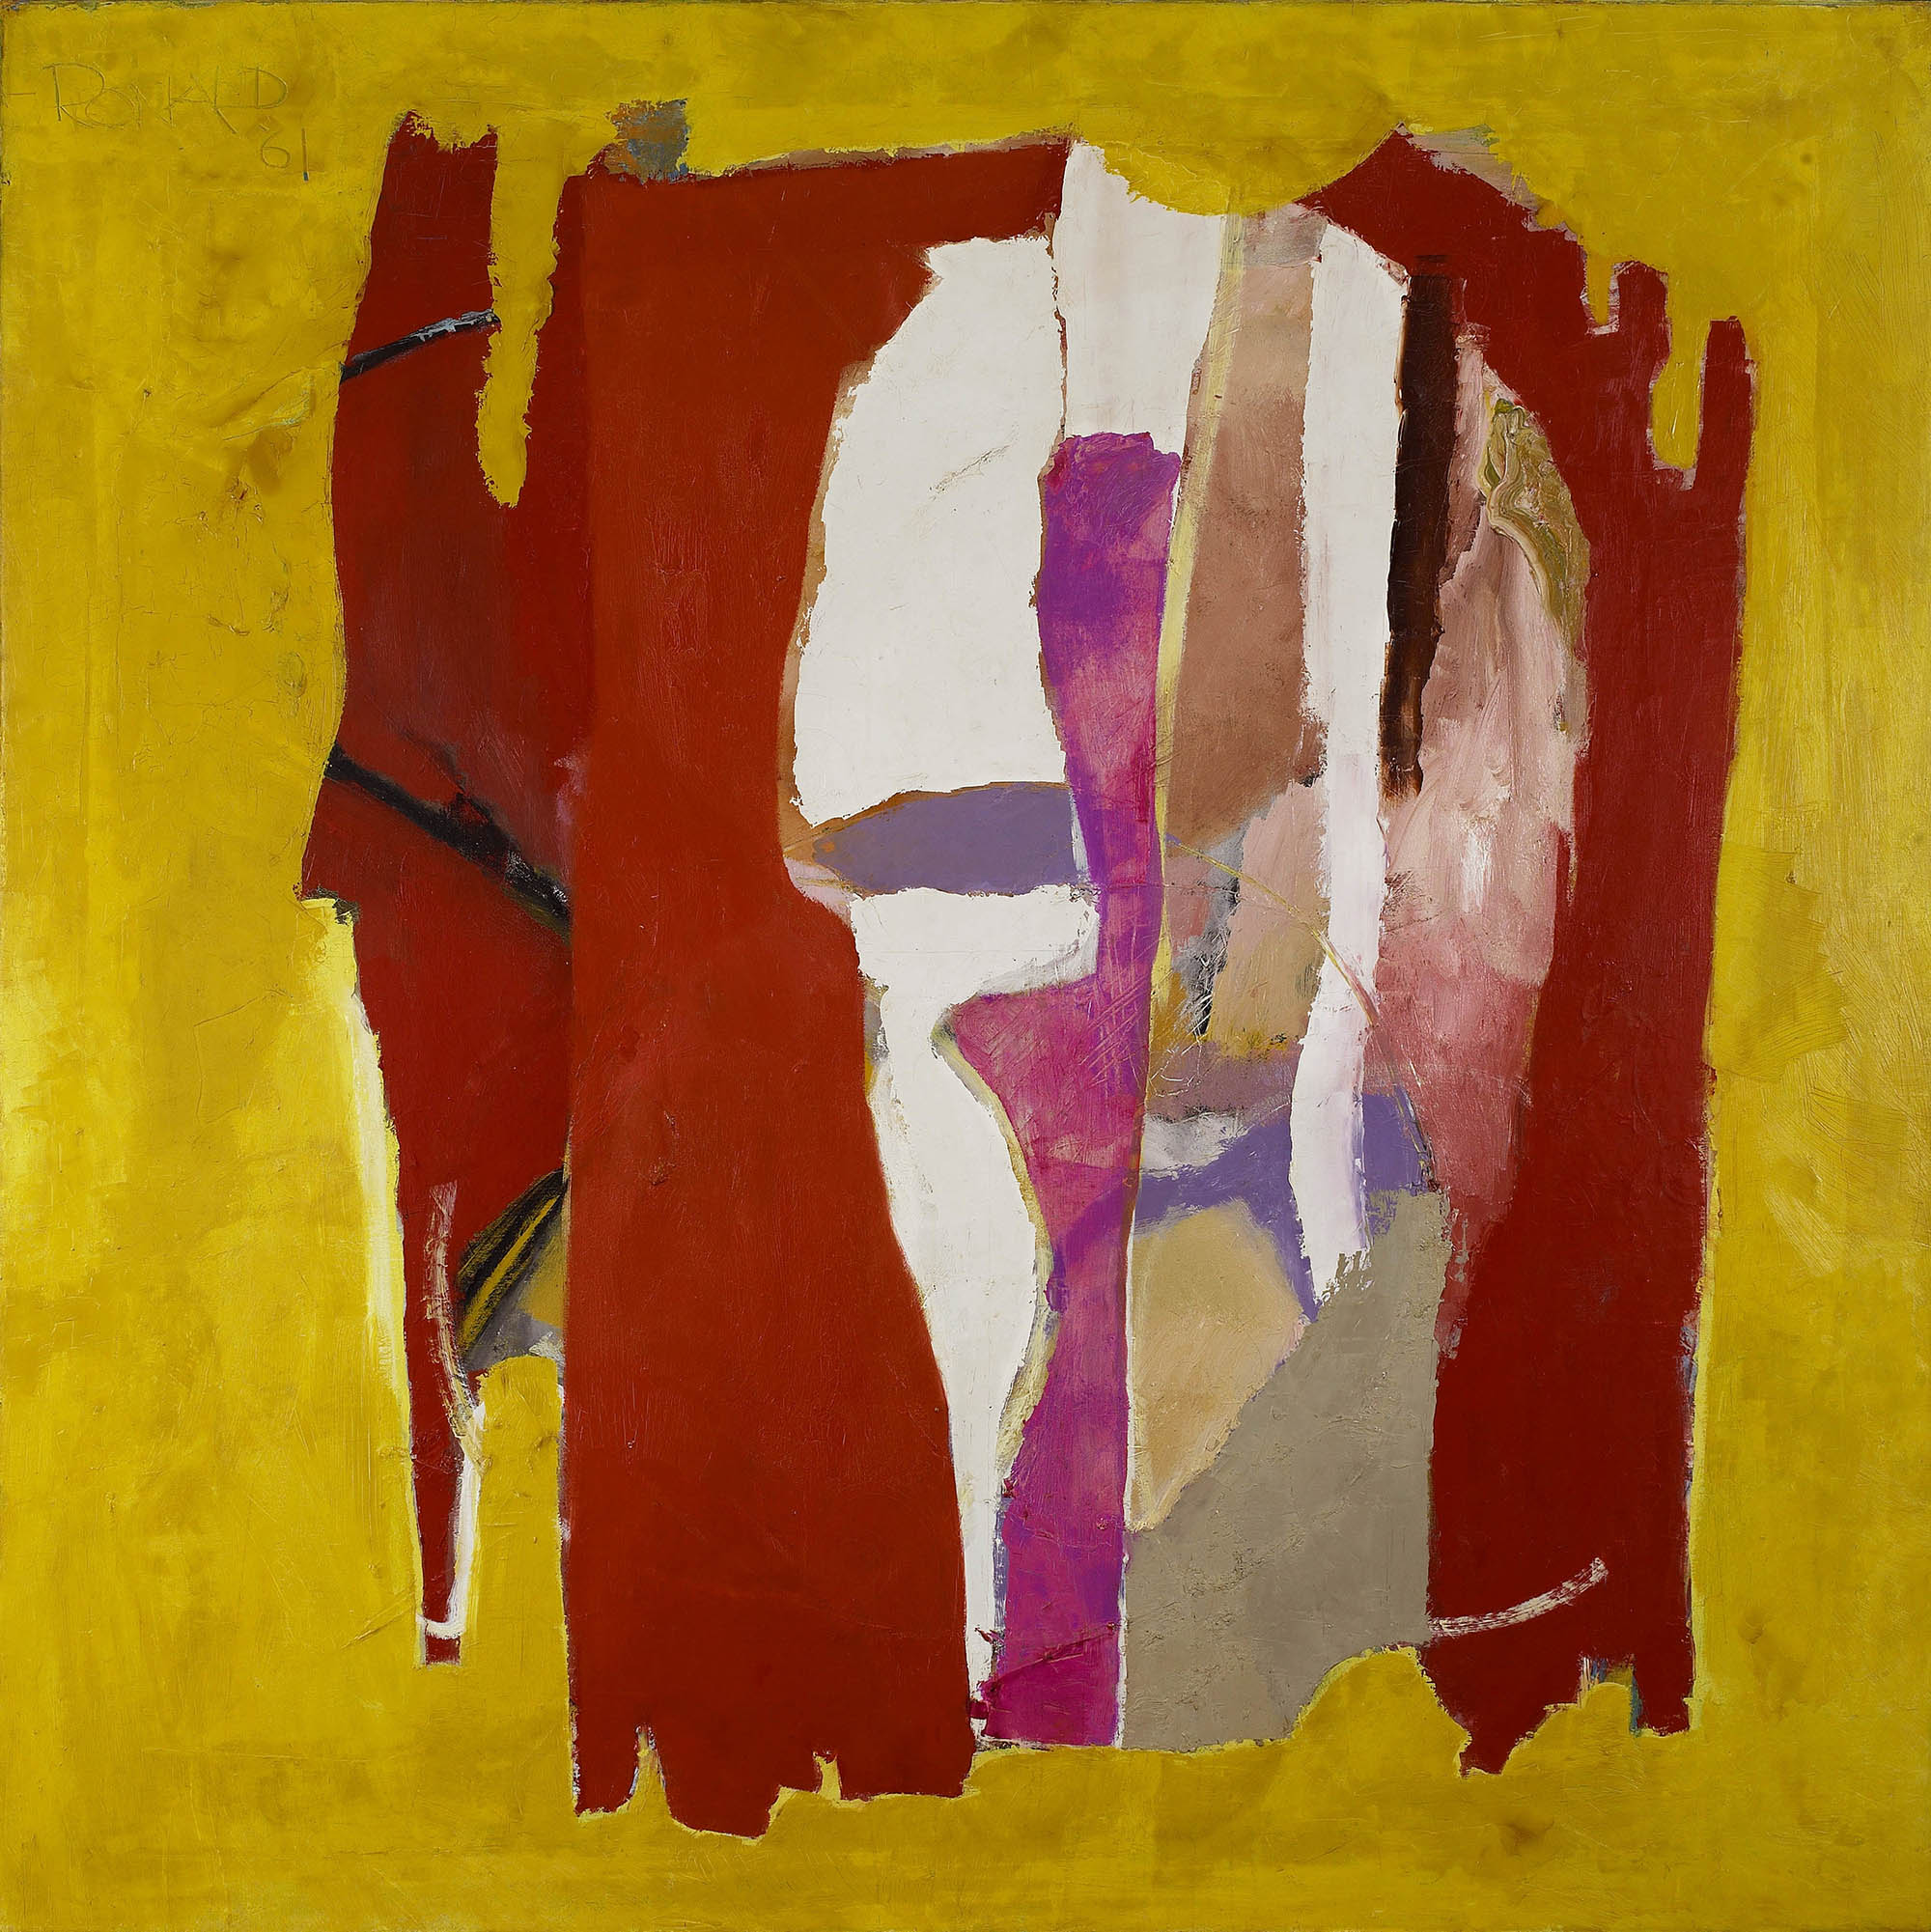 Seer, 1960-61  , oil on canvas, 68 3/4 x 68 3/4 inches